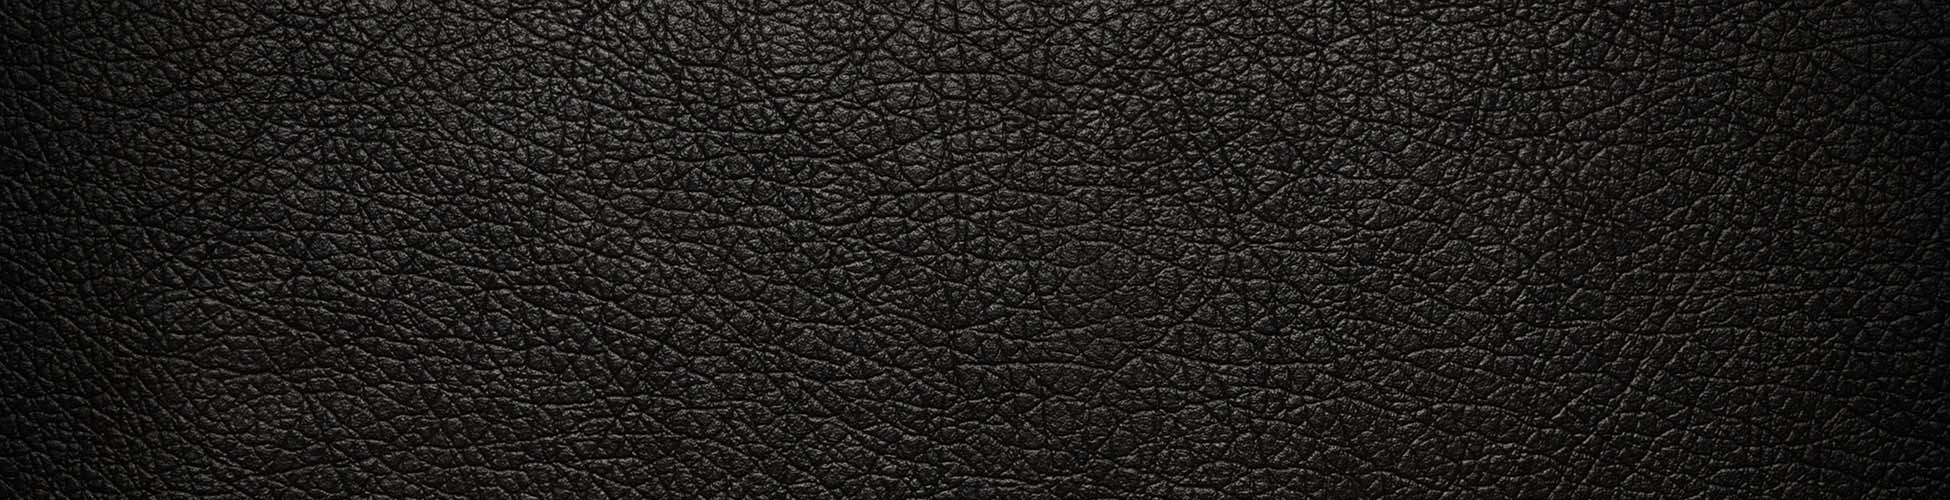 cropped-cropped-leather-black-cracked-background-texture1